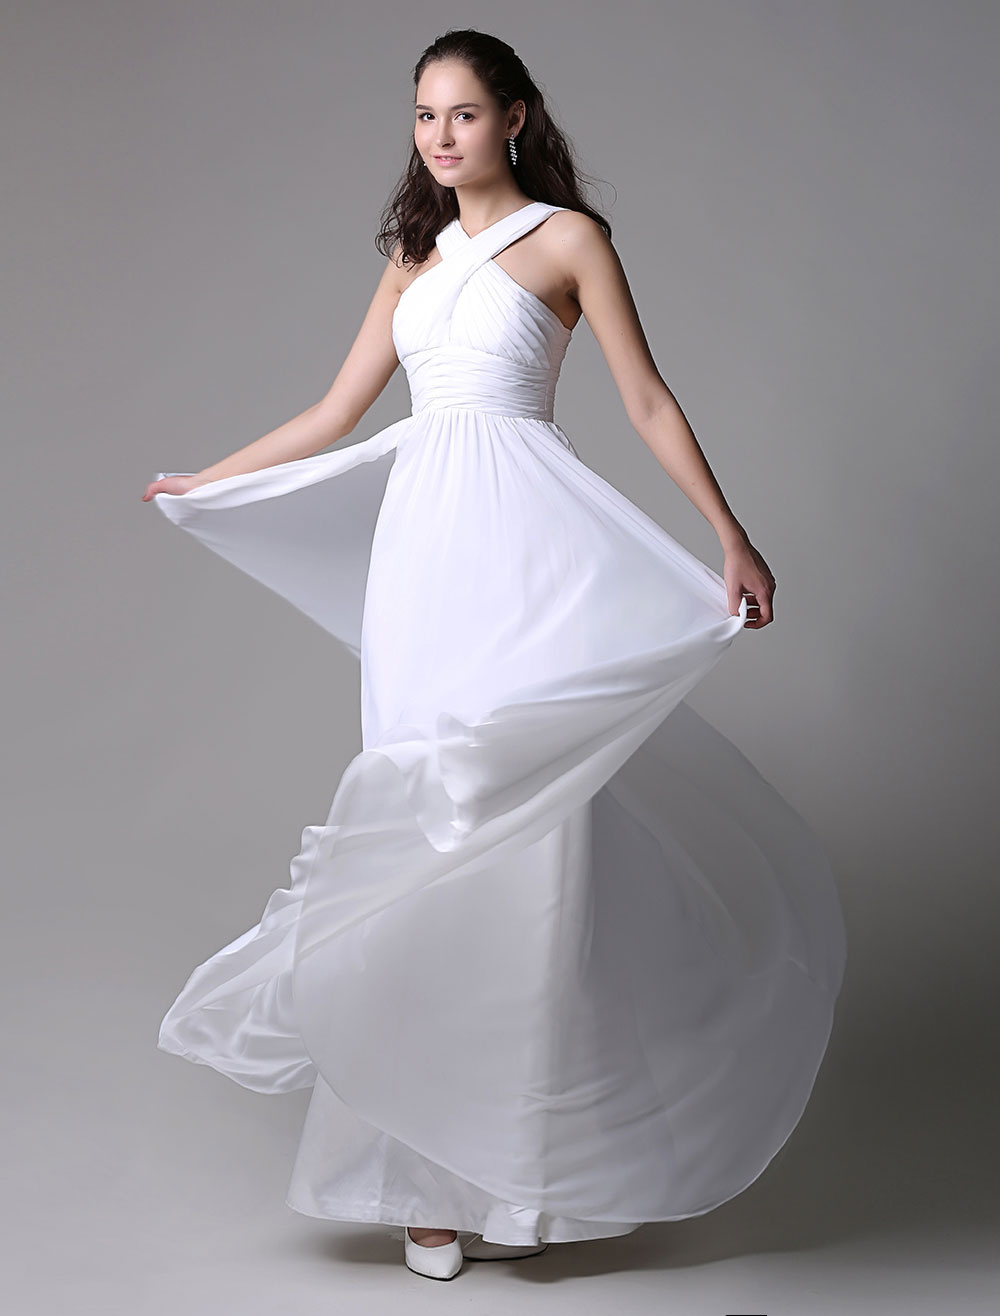 Flirty Ruched Ivory Chiffon Dress with Cross Front and Keyhole Style